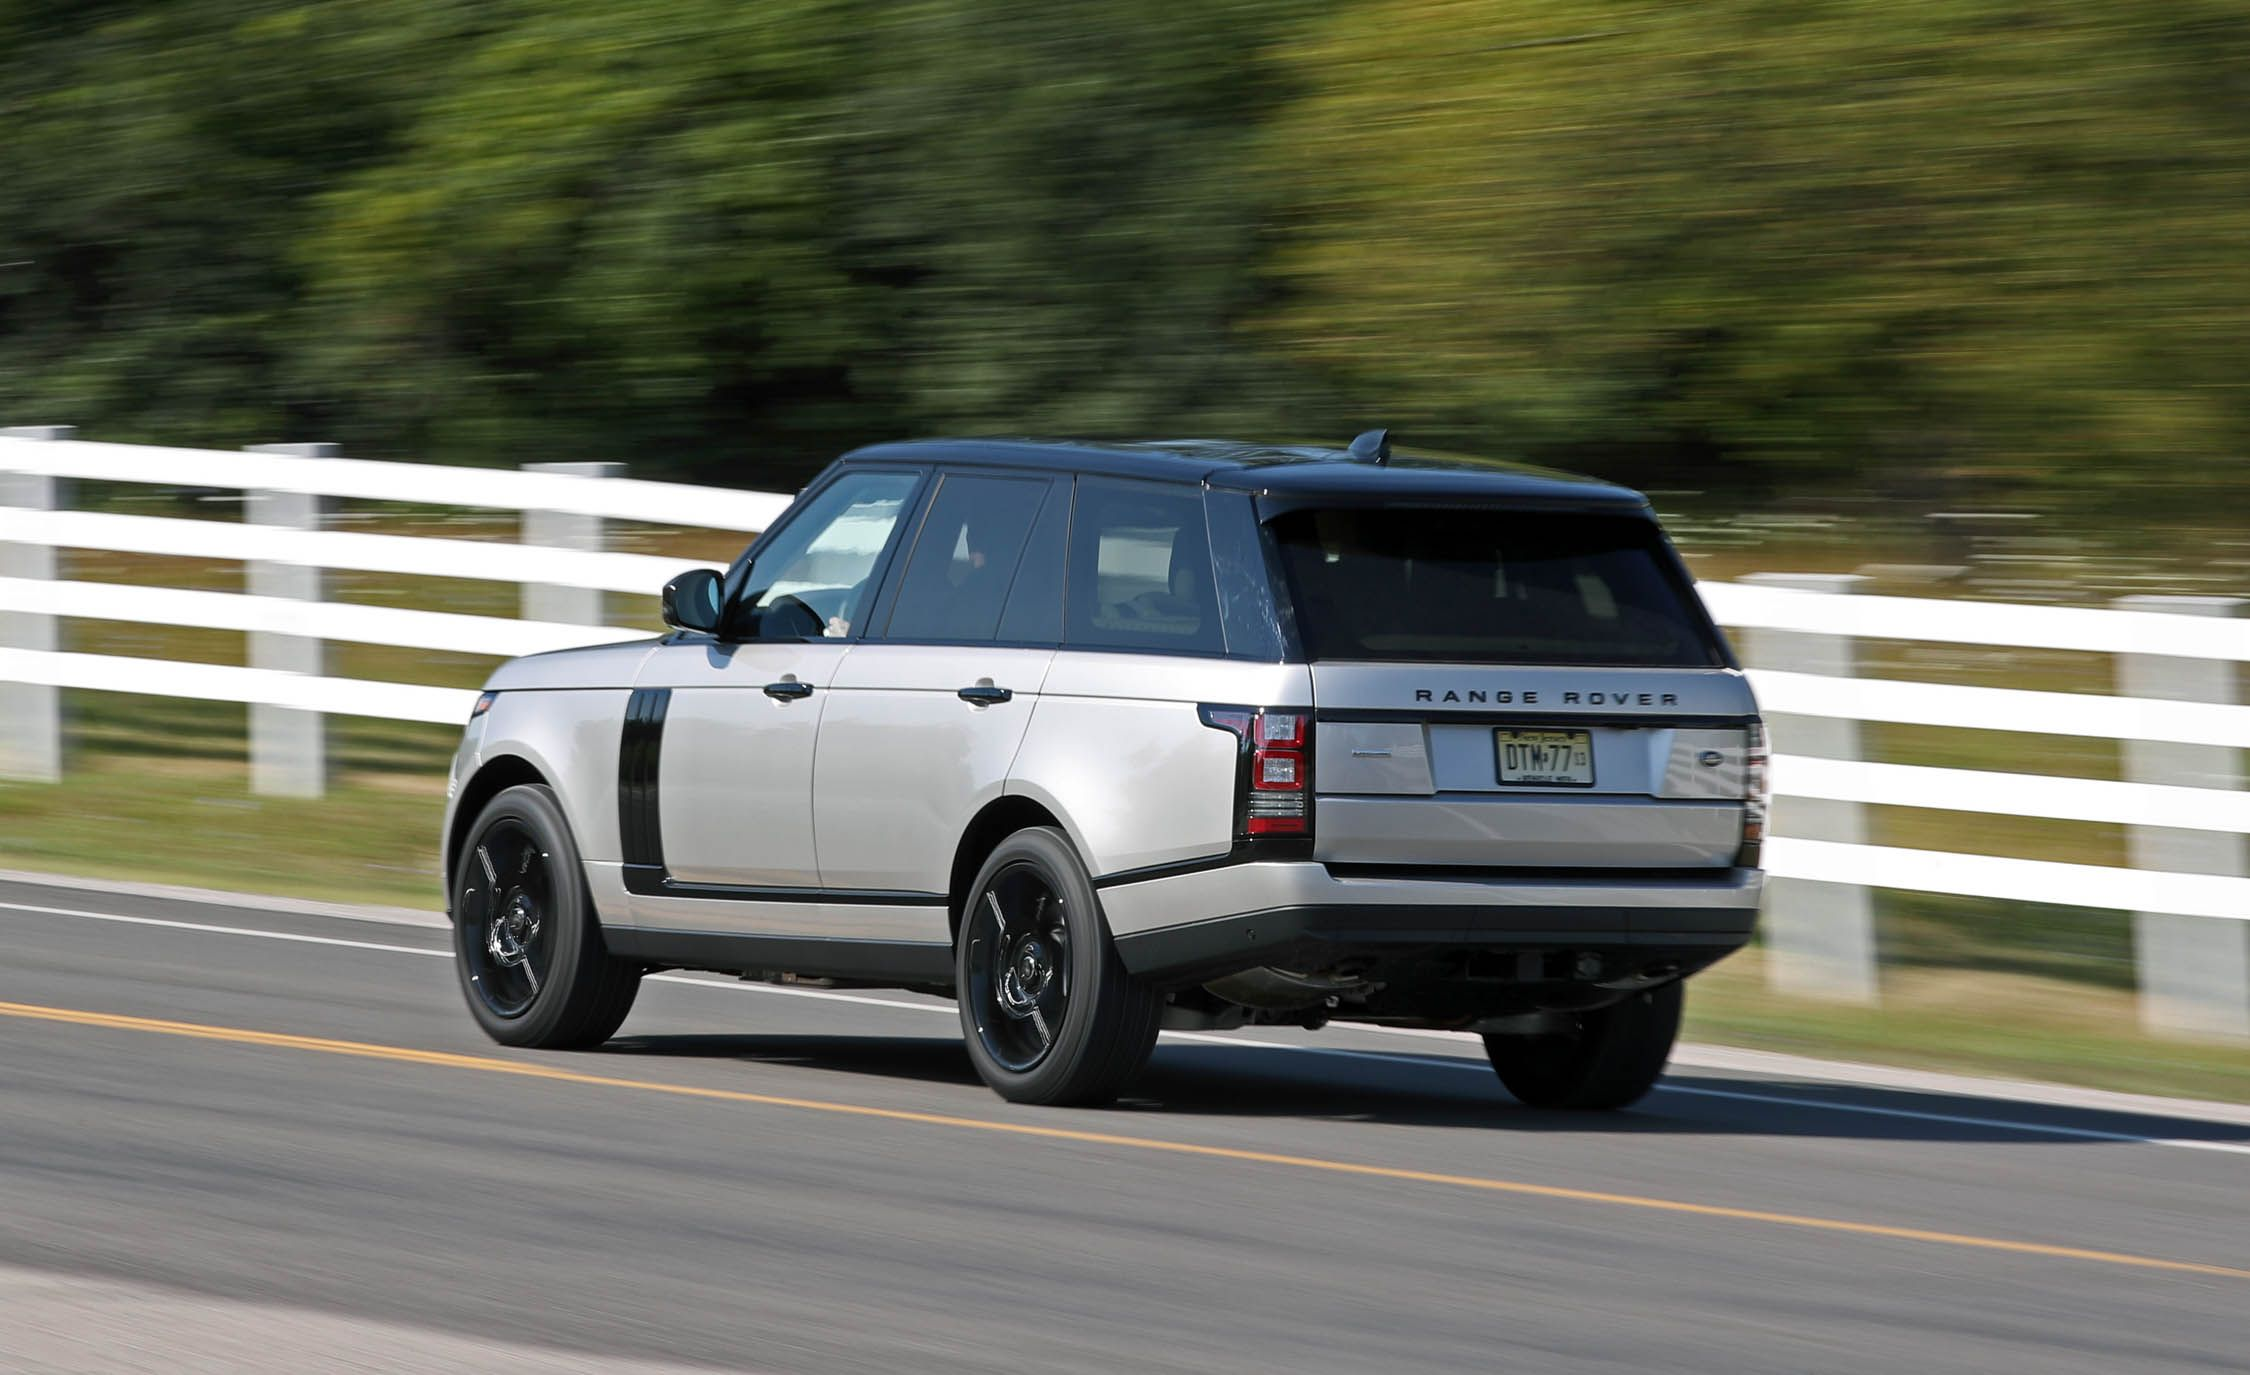 2019 Land Rover Range Rover Supercharged Reviews Land Rover Range